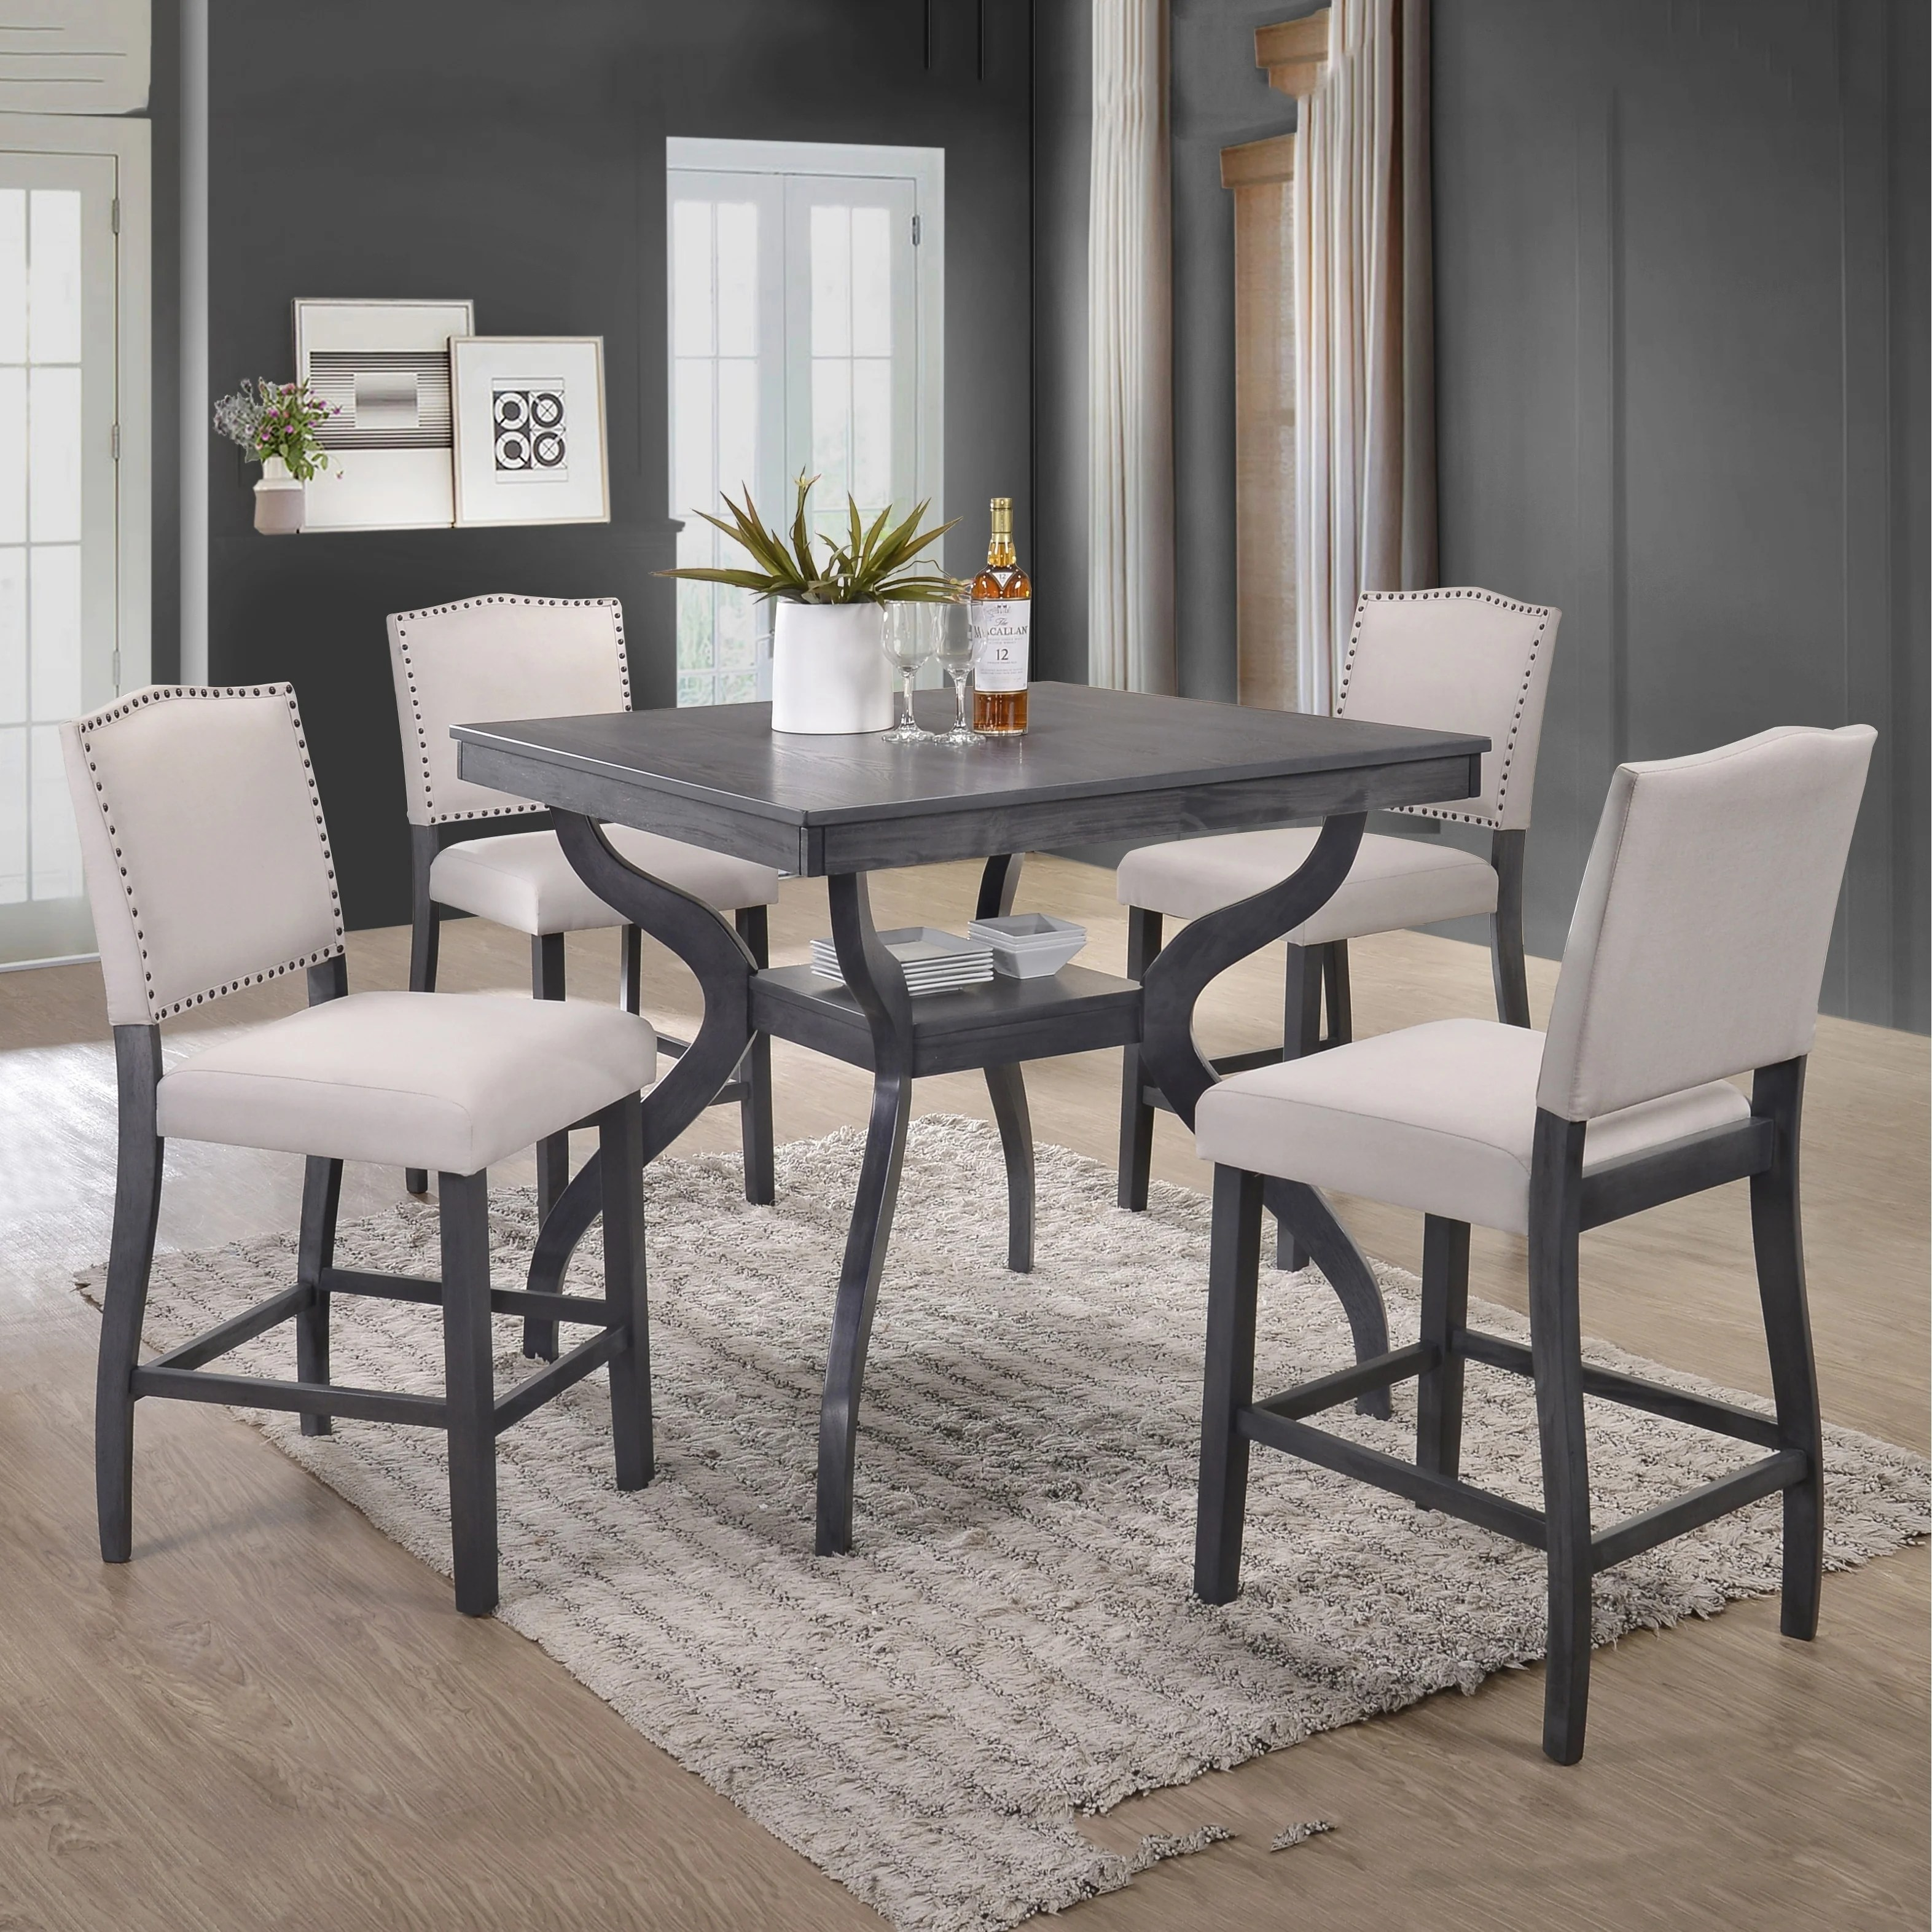 Best Quality Furniture Light Grey 5 Piece Counter Height Dining Set On Sale Overstock 18616133